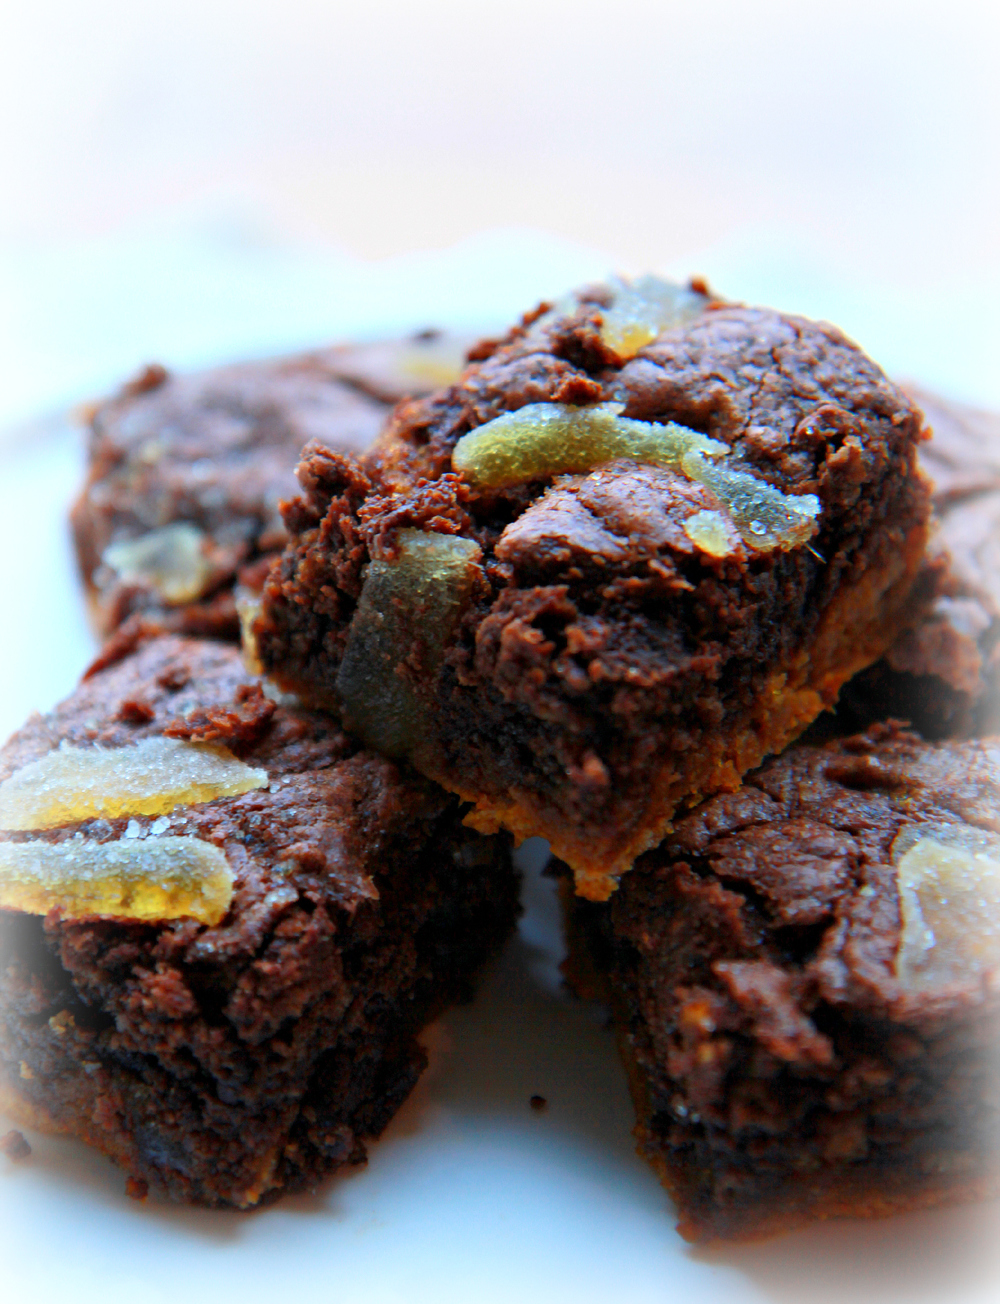 ©Pumpkin Swirl Brownies by Dena T Bray